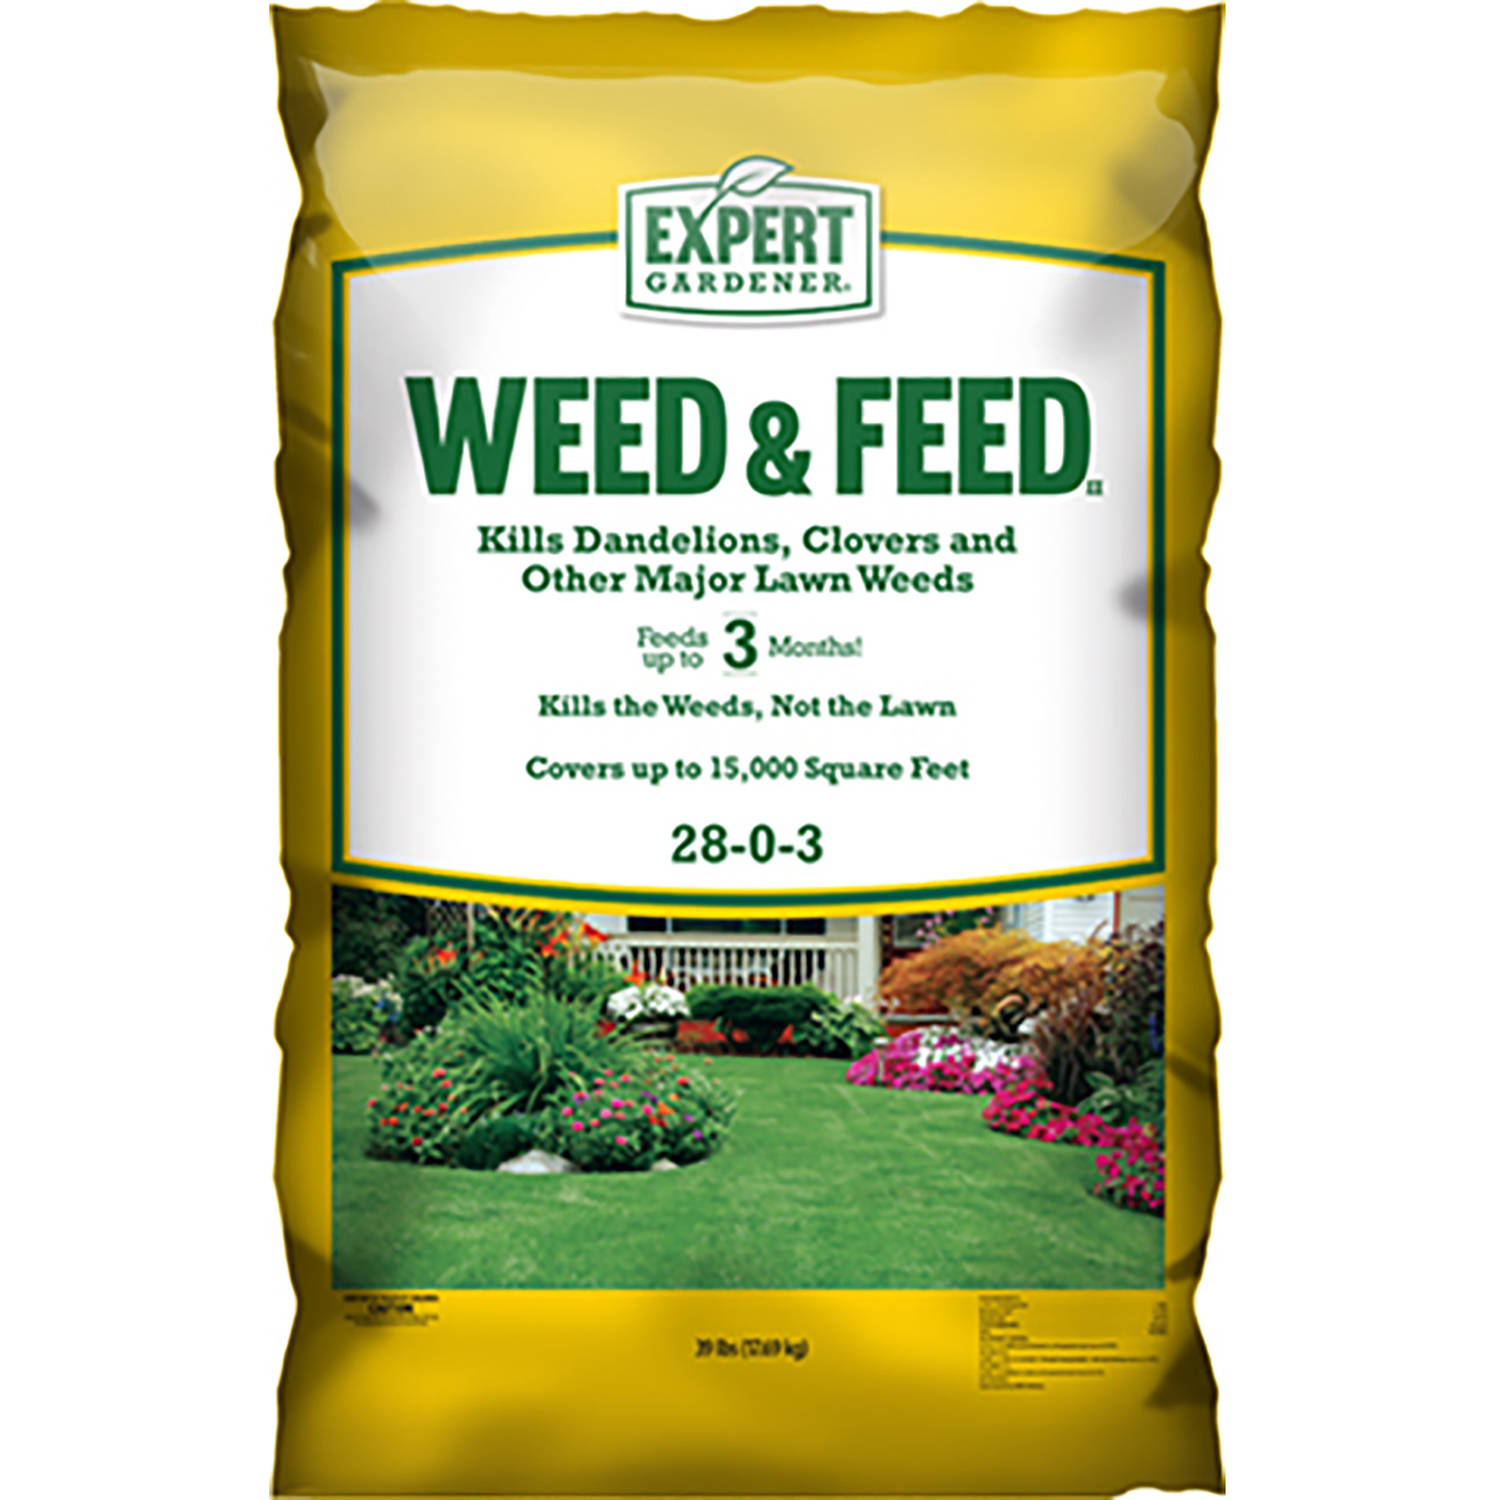 expert gardener weed and feed. Expert Gardener 15,000 Square Feet Weed And Feed Lawn Fertilizer, 28-0-3 X